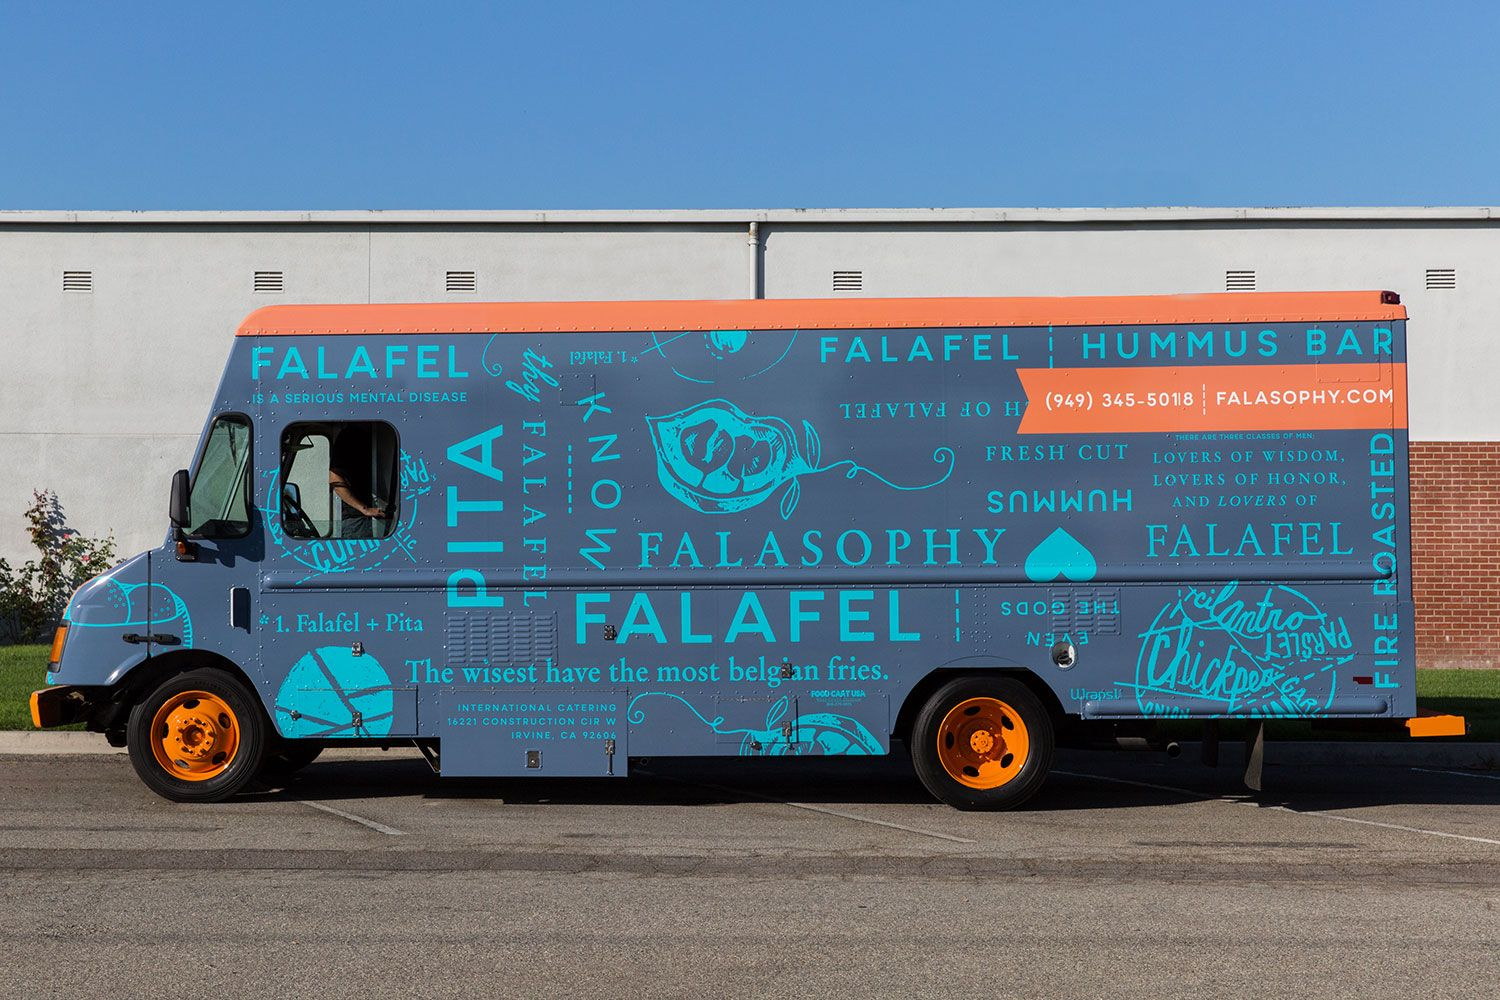 25 of the best food truck designs design galleries paste - 8 Ingenious Food Truck Designs Food Truck Falafel And Food Truck Design